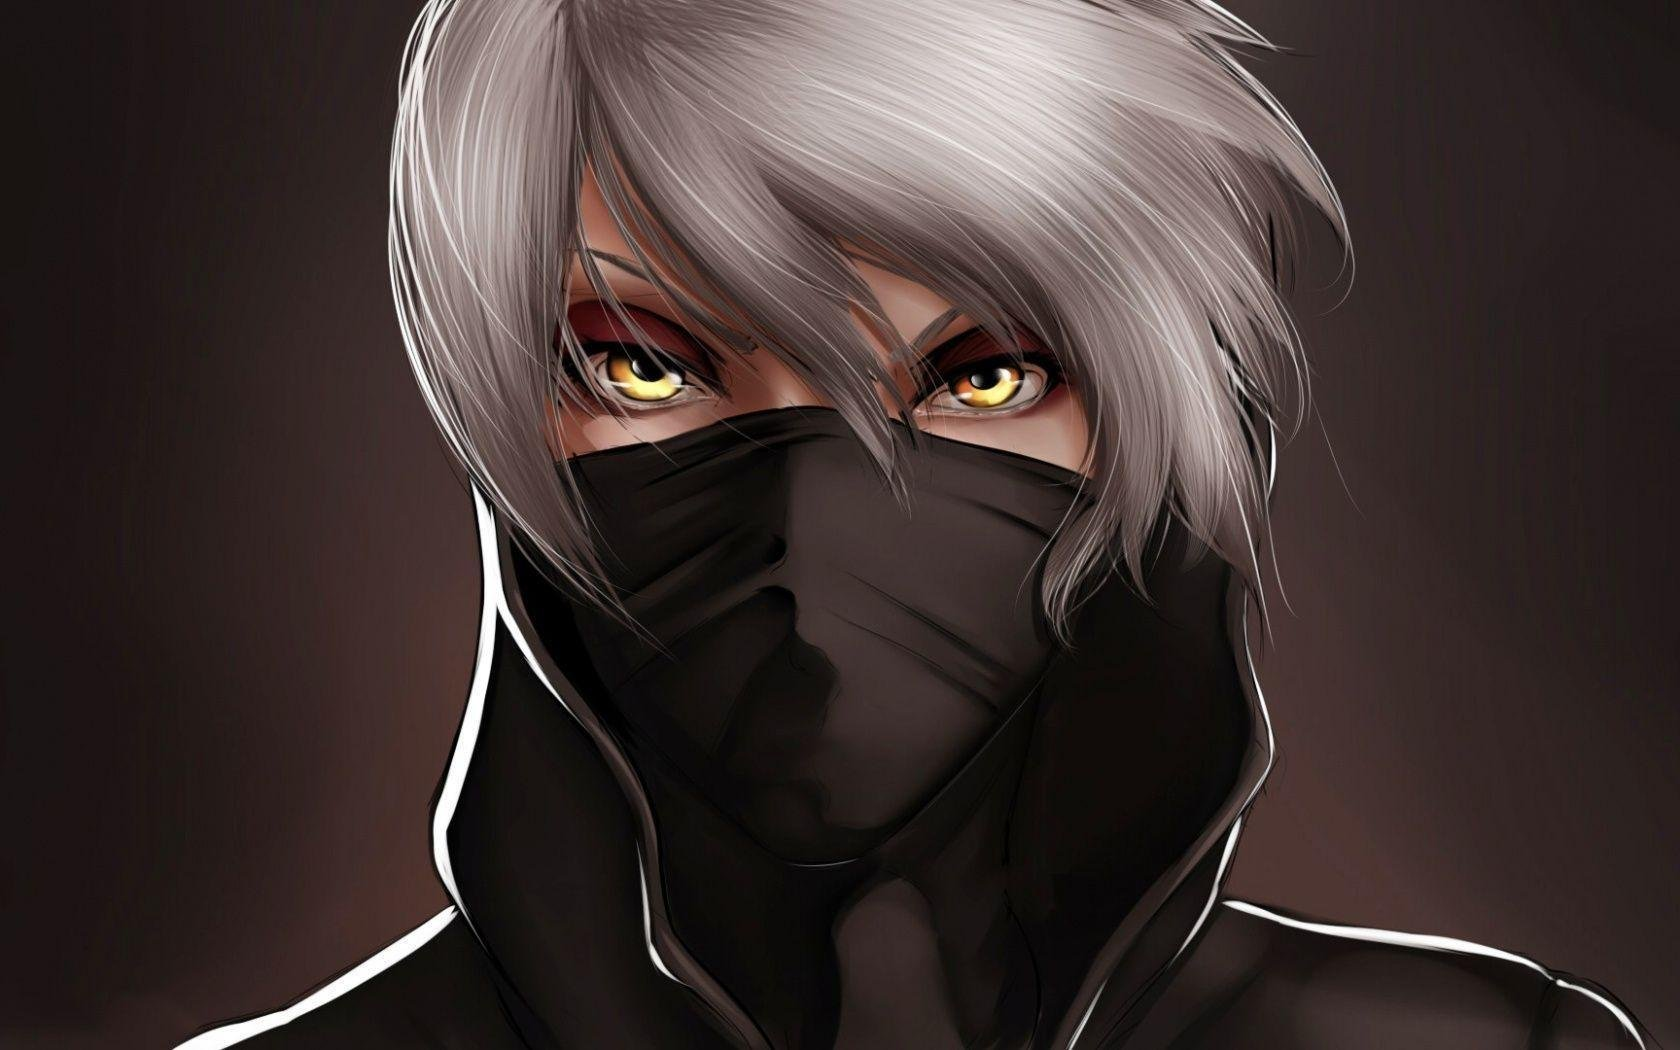 Anime Guy With Hoodie Wallpapers Wallpaper Cave